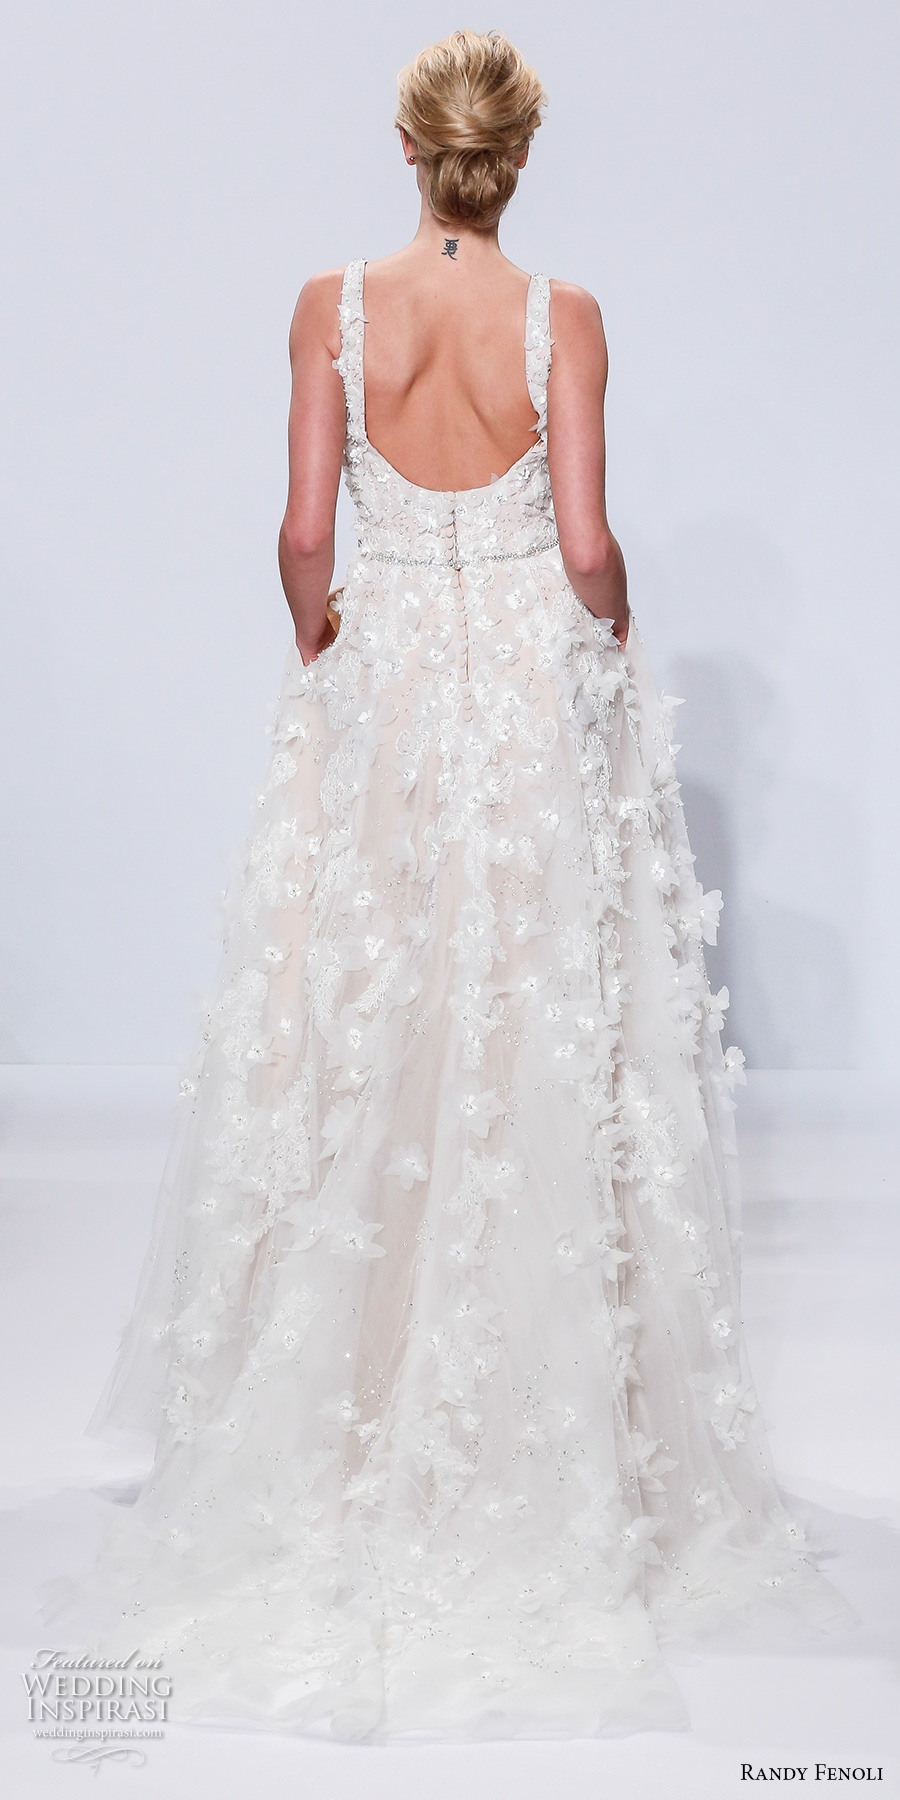 randy fenoli spring 2018 bridal sleeveless strap square neck full embellishment romantic elegant modified a  line wedding dress with pockets open square back short train (02) bv